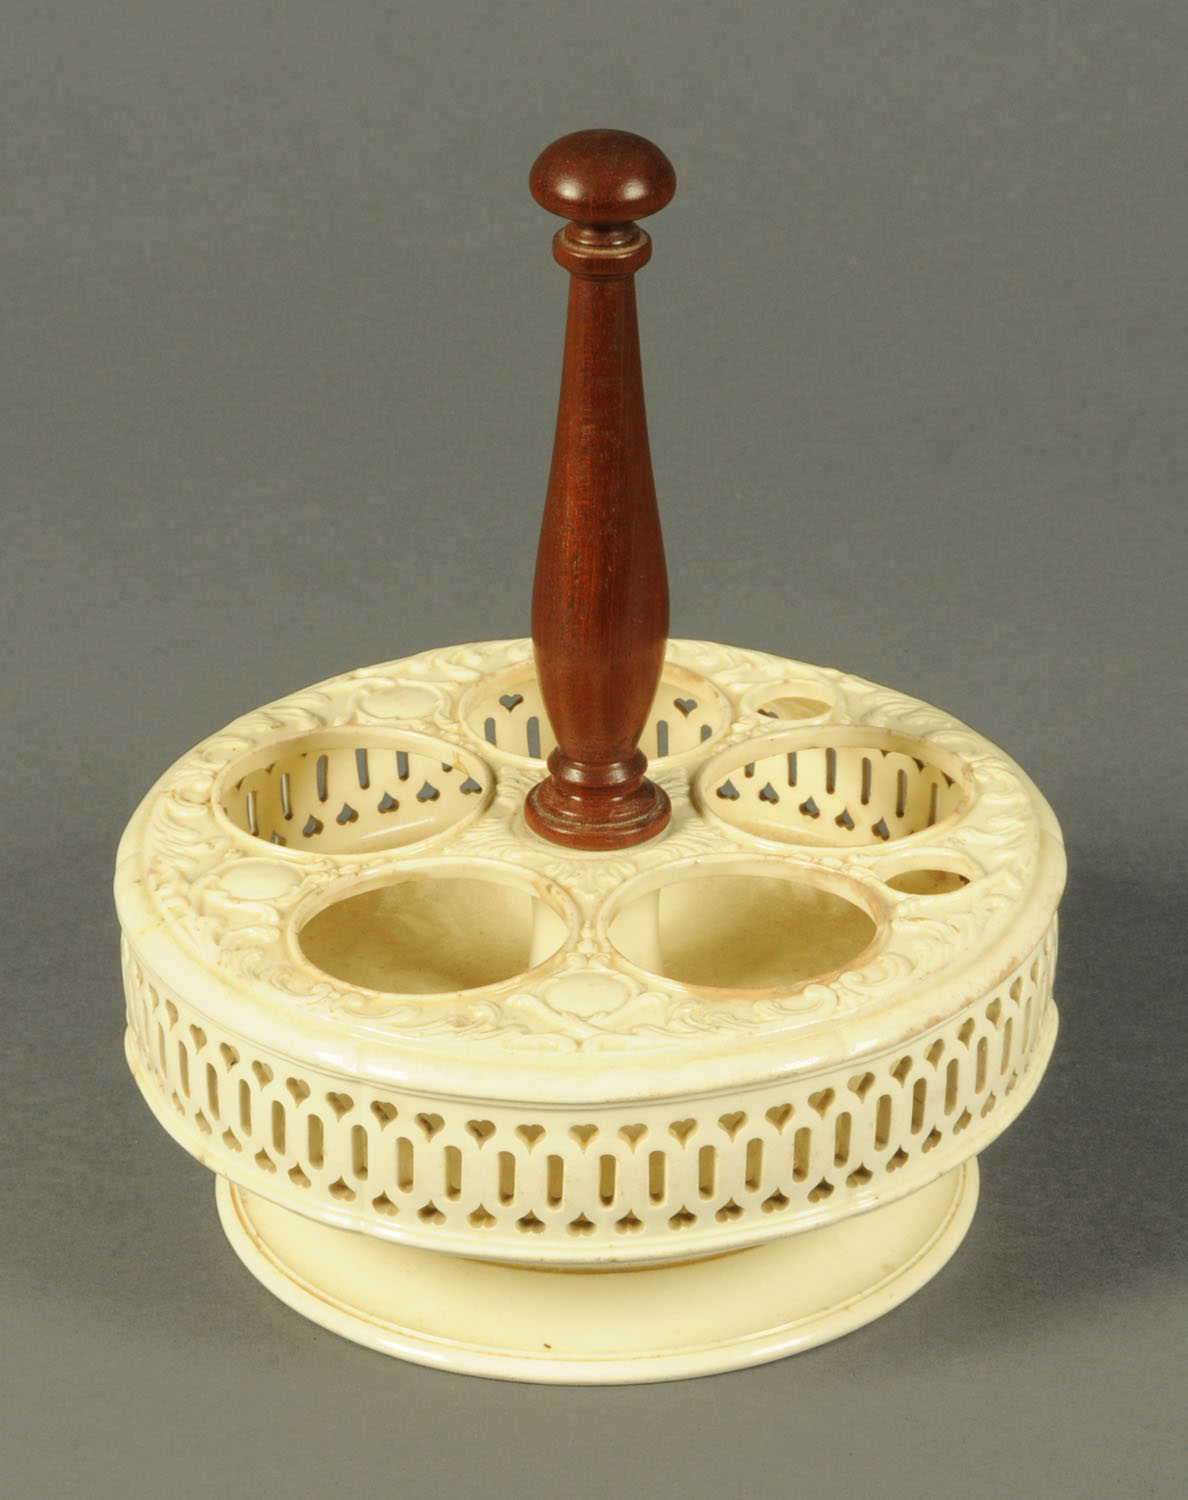 Lot 15 - An English creamware cruet stand, moulded and pierced circular form, with replacement wooden handle.